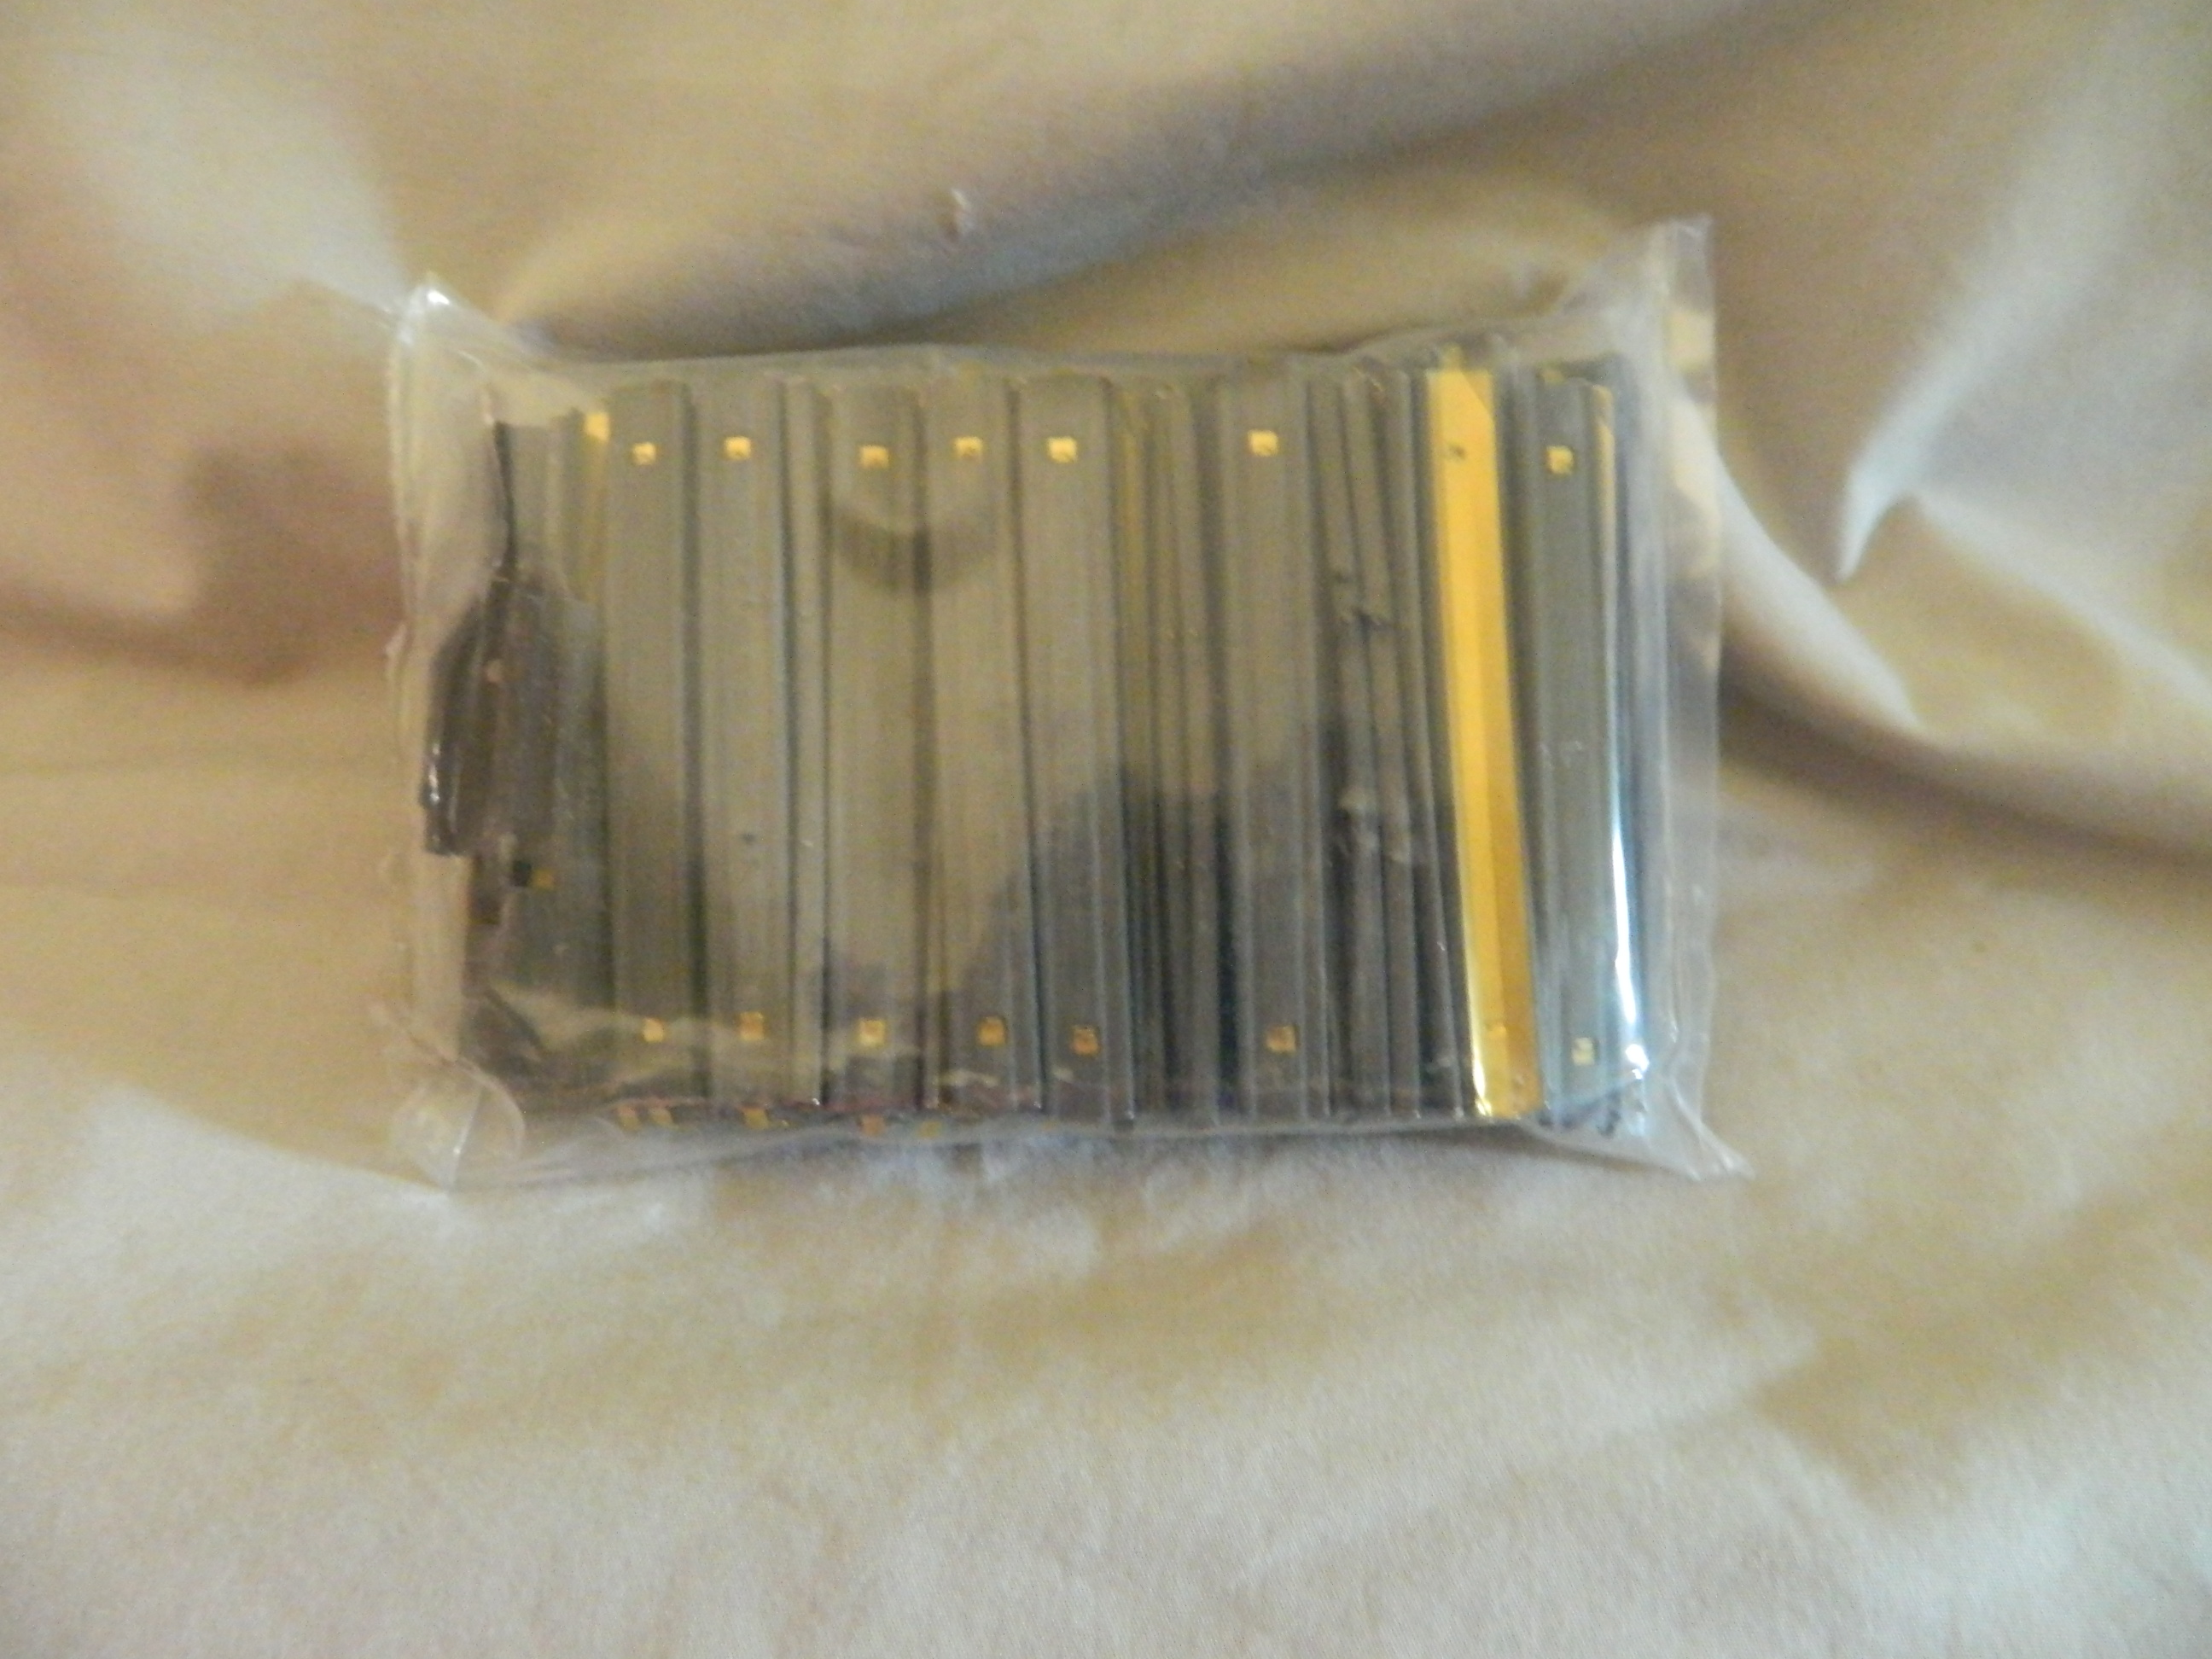 M16/AR15 .223 Stripper Clips- 100 Ct.+ 2 Charger/Loaders